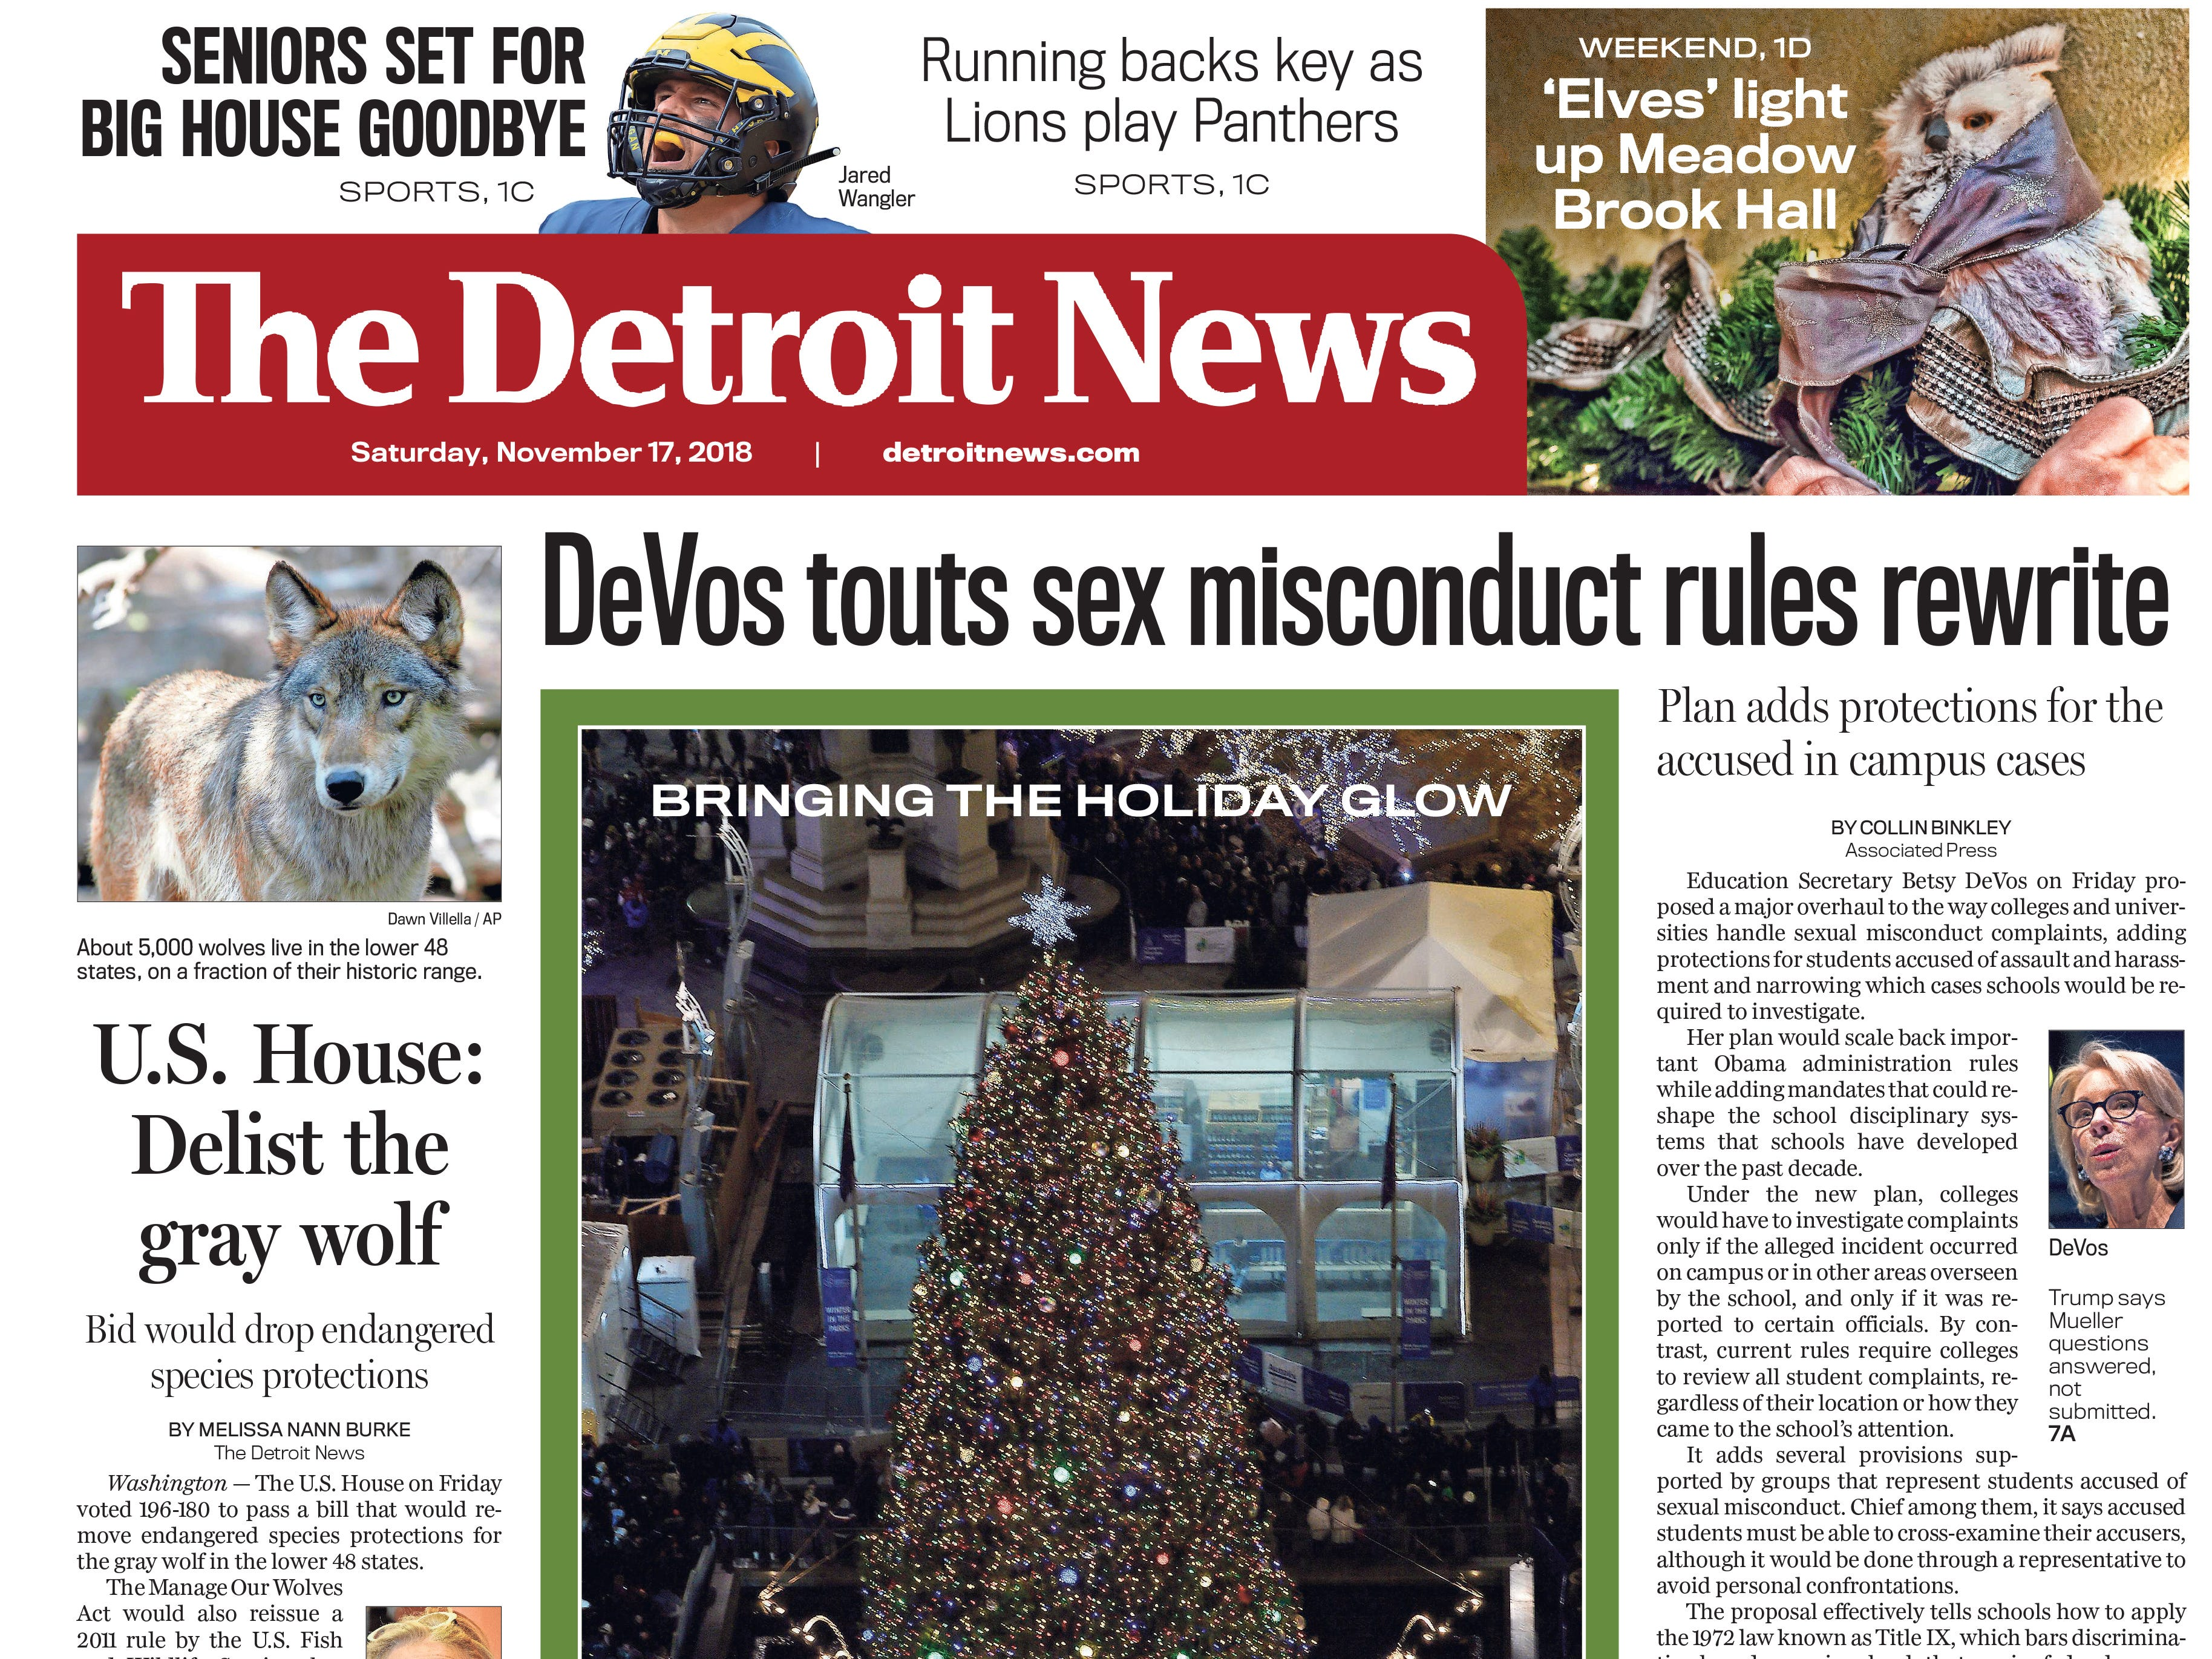 The front page of the Detroit News on Saturday, November 17, 2018.